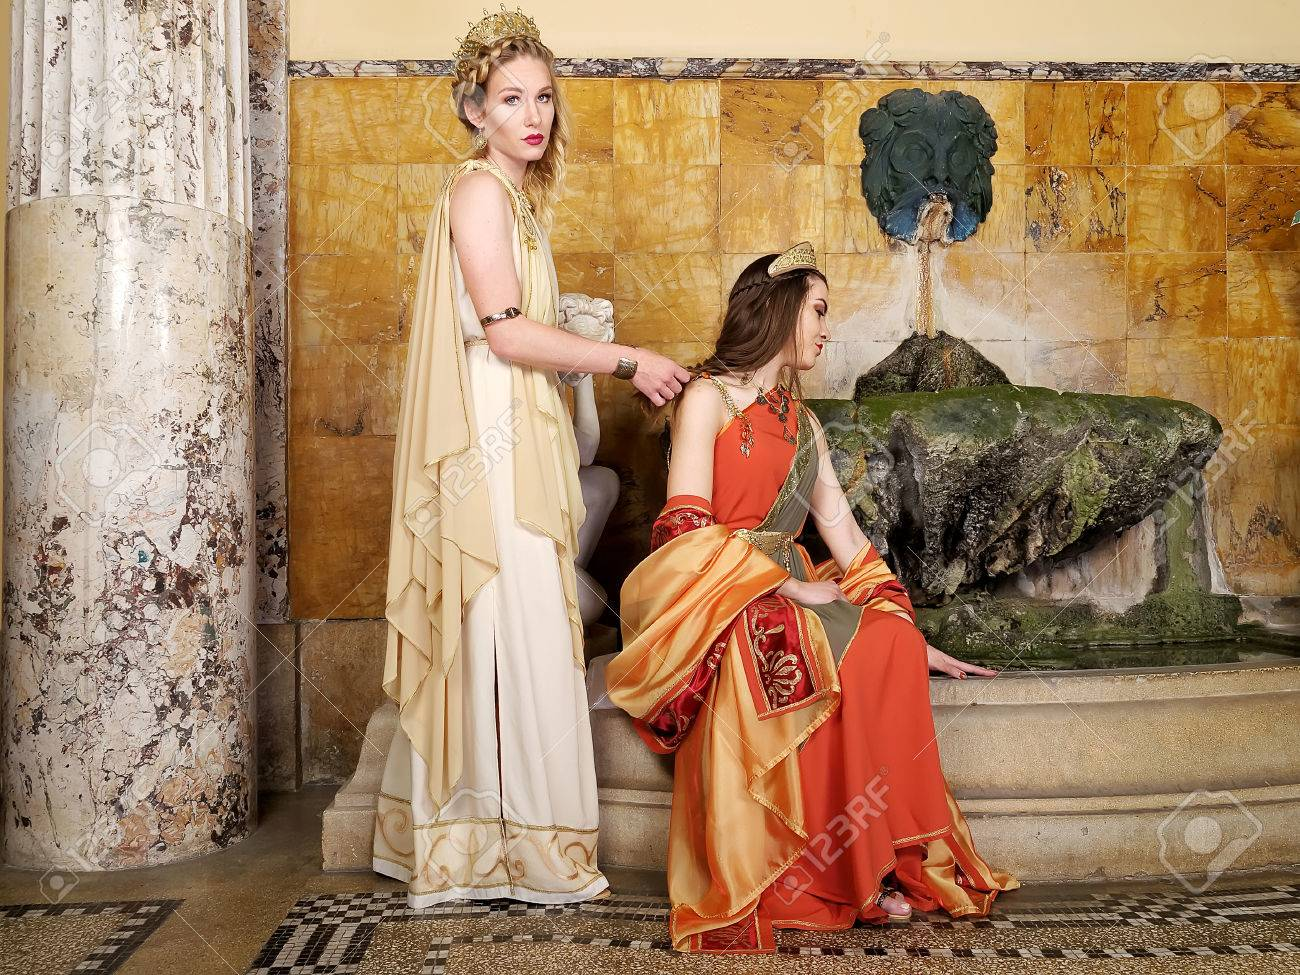 7220aad9323 Women In Traditional Roman Clothing Posing In Temple Stock Photo ...